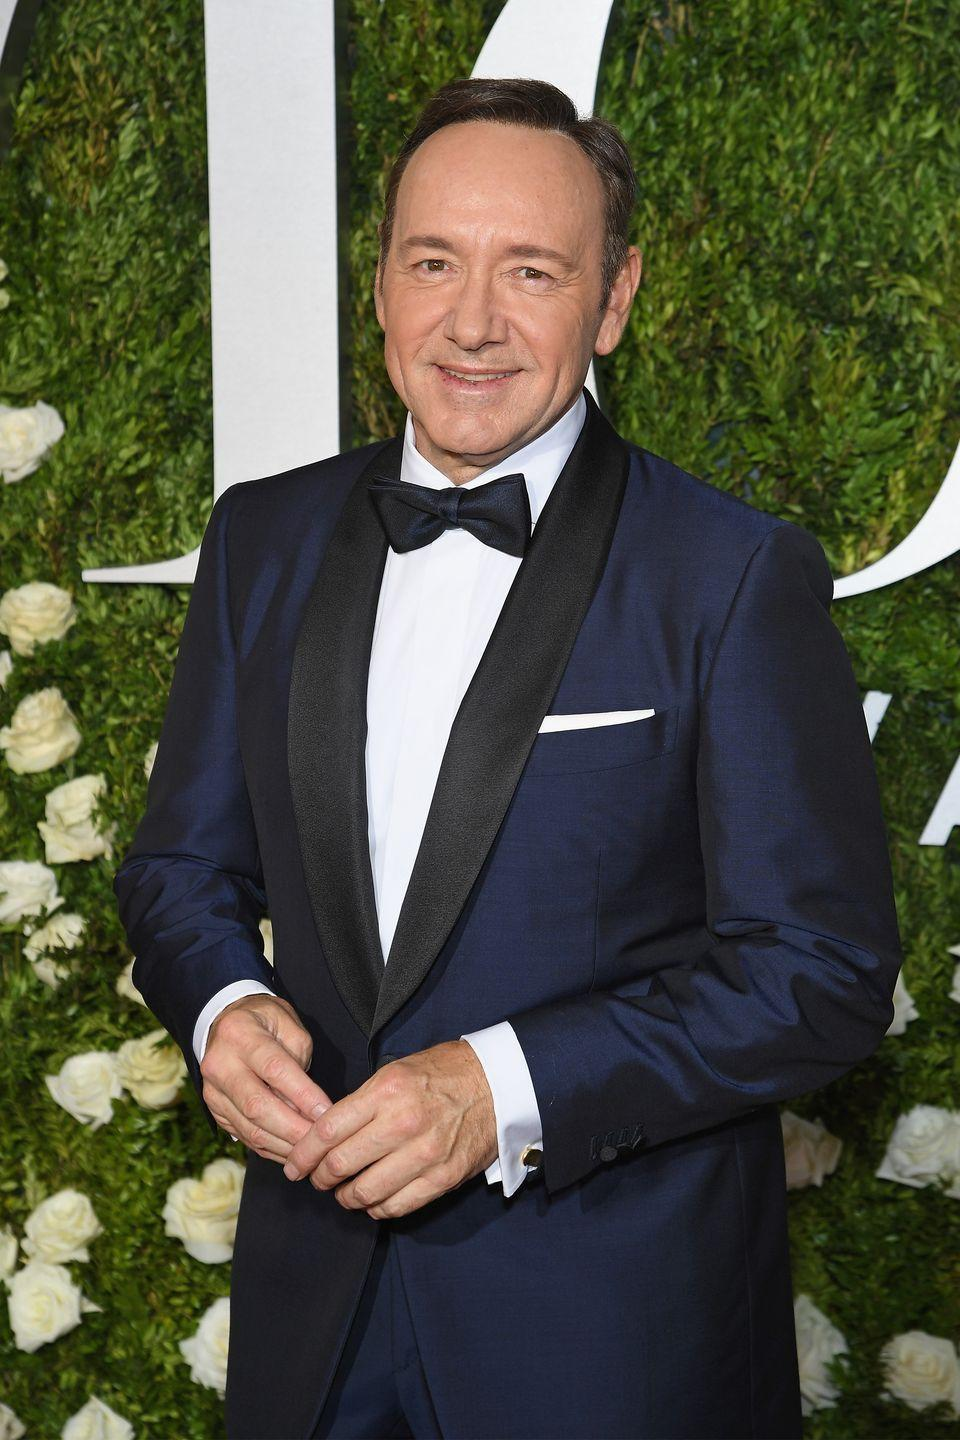 """<p>Kevin Spacey had just finished filming <em>All the Money in the World</em>, where he played billionaire tycoon J. Paul Getty, when <a href=""""https://abcnews.go.com/US/rise-fall-kevin-spacey-timeline-sexual-assault-allegations/story?id=63420983"""" rel=""""nofollow noopener"""" target=""""_blank"""" data-ylk=""""slk:sexual assault allegations"""" class=""""link rapid-noclick-resp"""">sexual assault allegations</a> were brought up against him. Due to the sensitive nature of the case, Spacey was cut from the film and <a href=""""https://www.nytimes.com/2018/02/06/movies/christopher-plummer-kevin-spacey-oscar.html"""" rel=""""nofollow noopener"""" target=""""_blank"""" data-ylk=""""slk:Christopher Plummer was brought in as a replacement"""" class=""""link rapid-noclick-resp"""">Christopher Plummer was brought in as a replacement</a>. Plummer was nominated for an Academy Award for the role. </p>"""